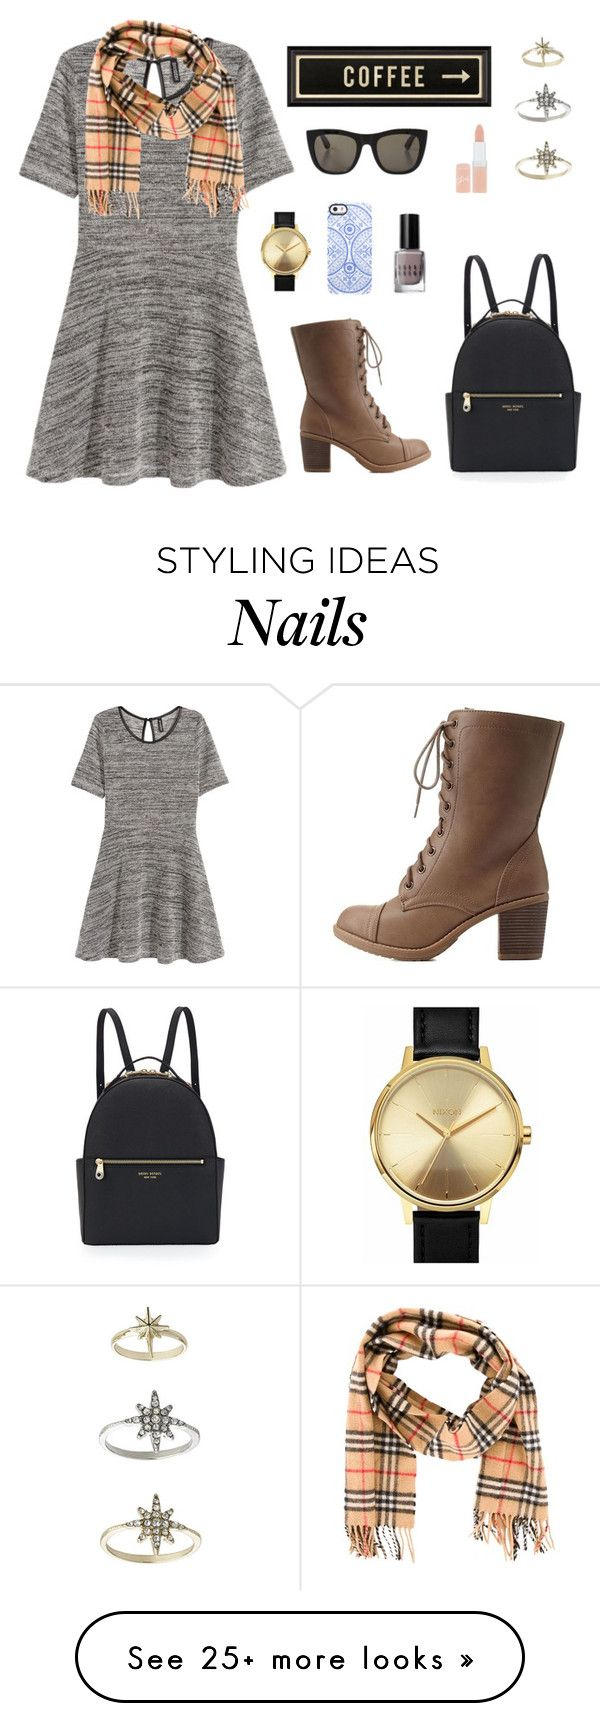 """Exploring the city"" by clothespose on Polyvore featuring H&M, Nixon, Rimmel, Burberry, RetroSuperFuture, Charlotte Russe, Topshop, Spicher and Company, Uncommon and Bobbi Brown Cosmetics"